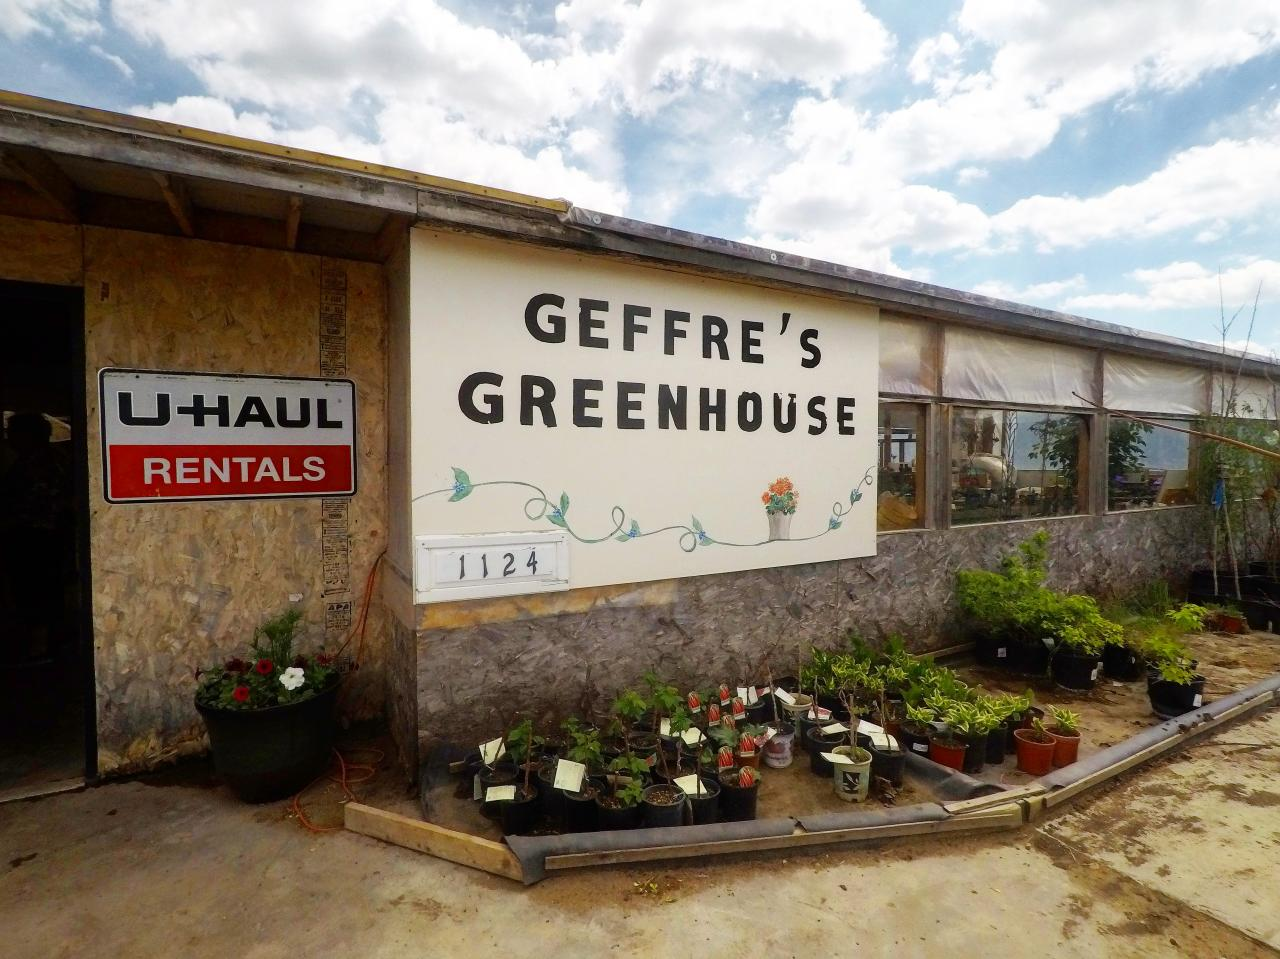 Geffre's Greenhouse